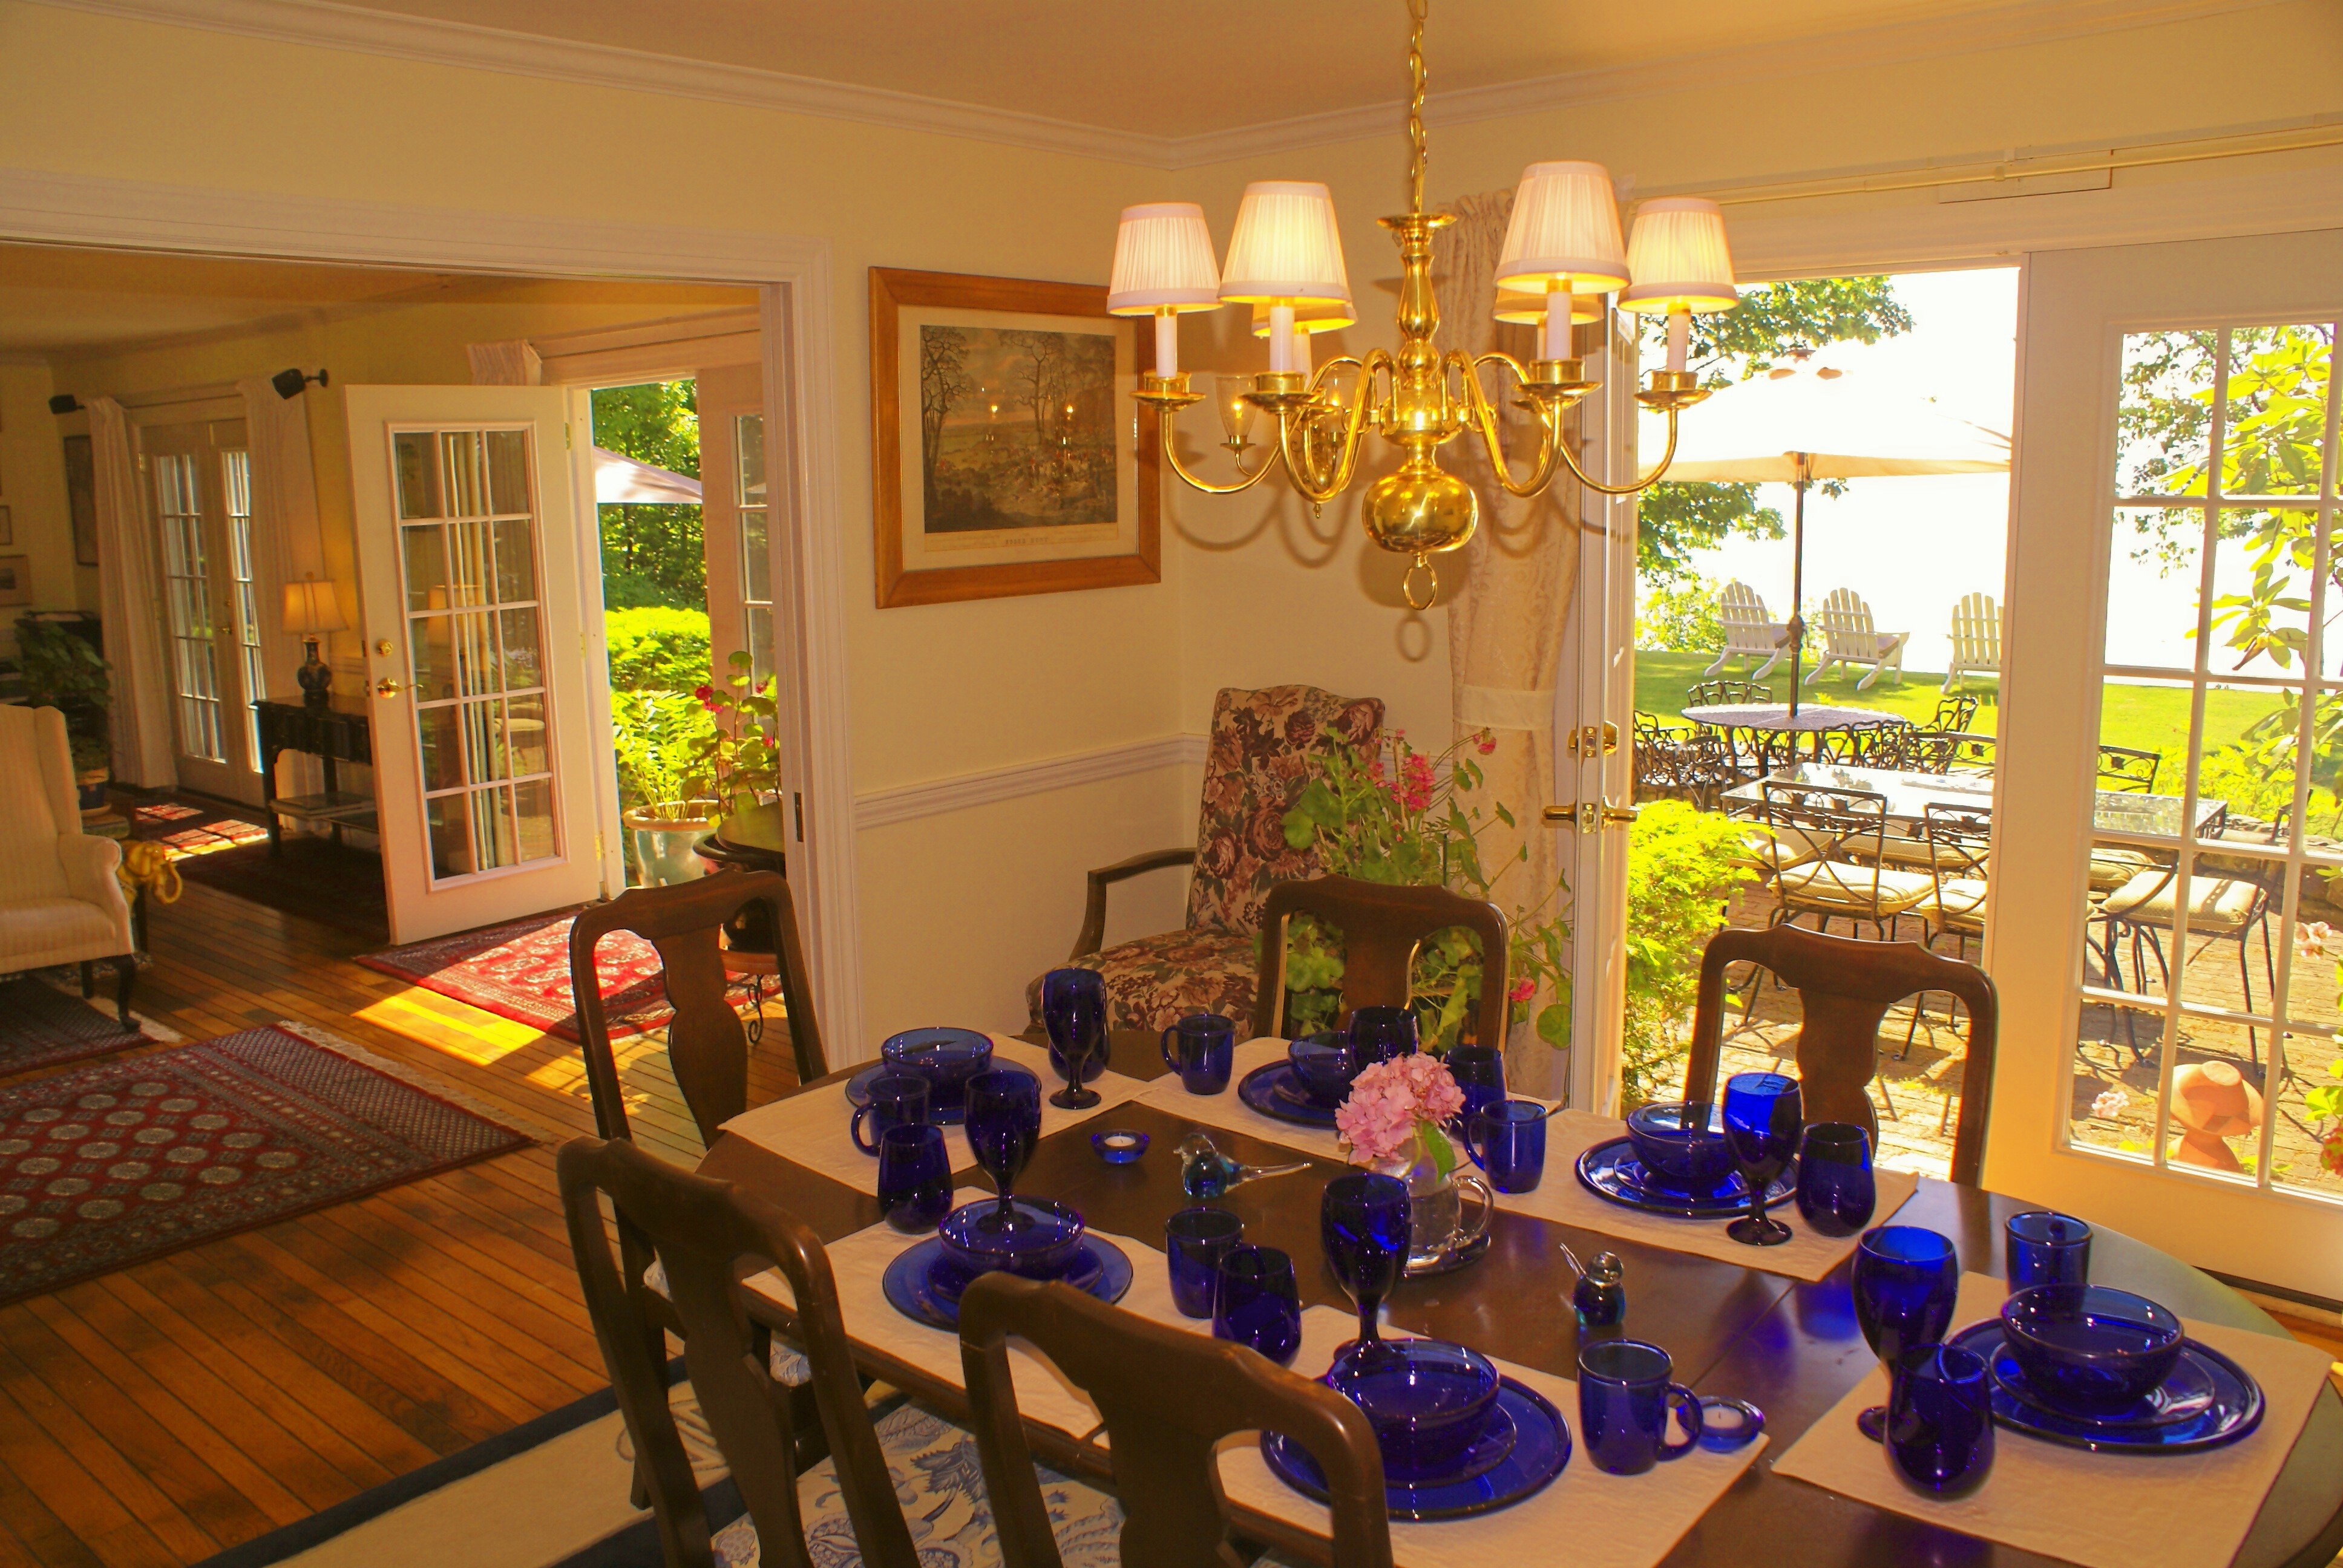 Formal dining room. Ocean view. French door to brick patio and outside dining. Brass appointments. Stobart art. 200-year old English hunting prints. Antiques. Formal place settings, 3 collections of china. Seats 8, plus 6.